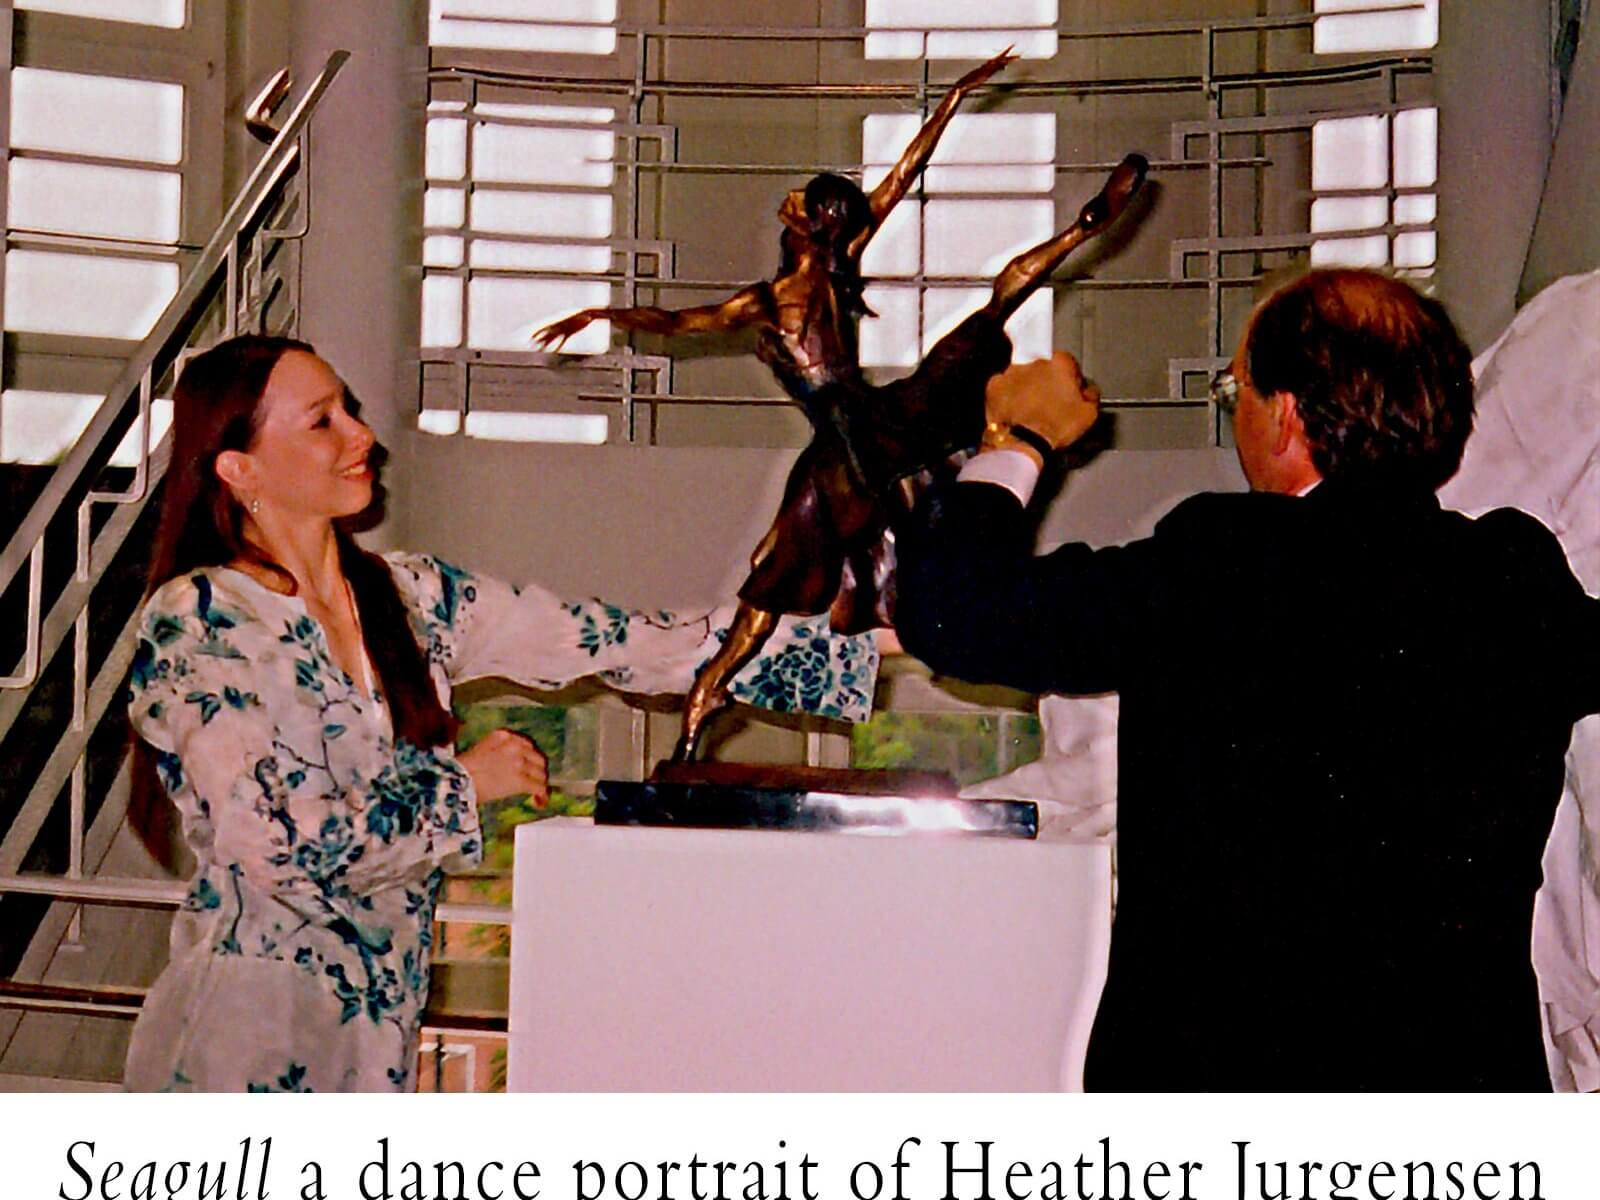 Seagull a bronze female dance bronze sculpture, portrait of Heather Jurgensen by Andrew DeVries installed at the Hamburg Ballet Center, Hamburg, Germany